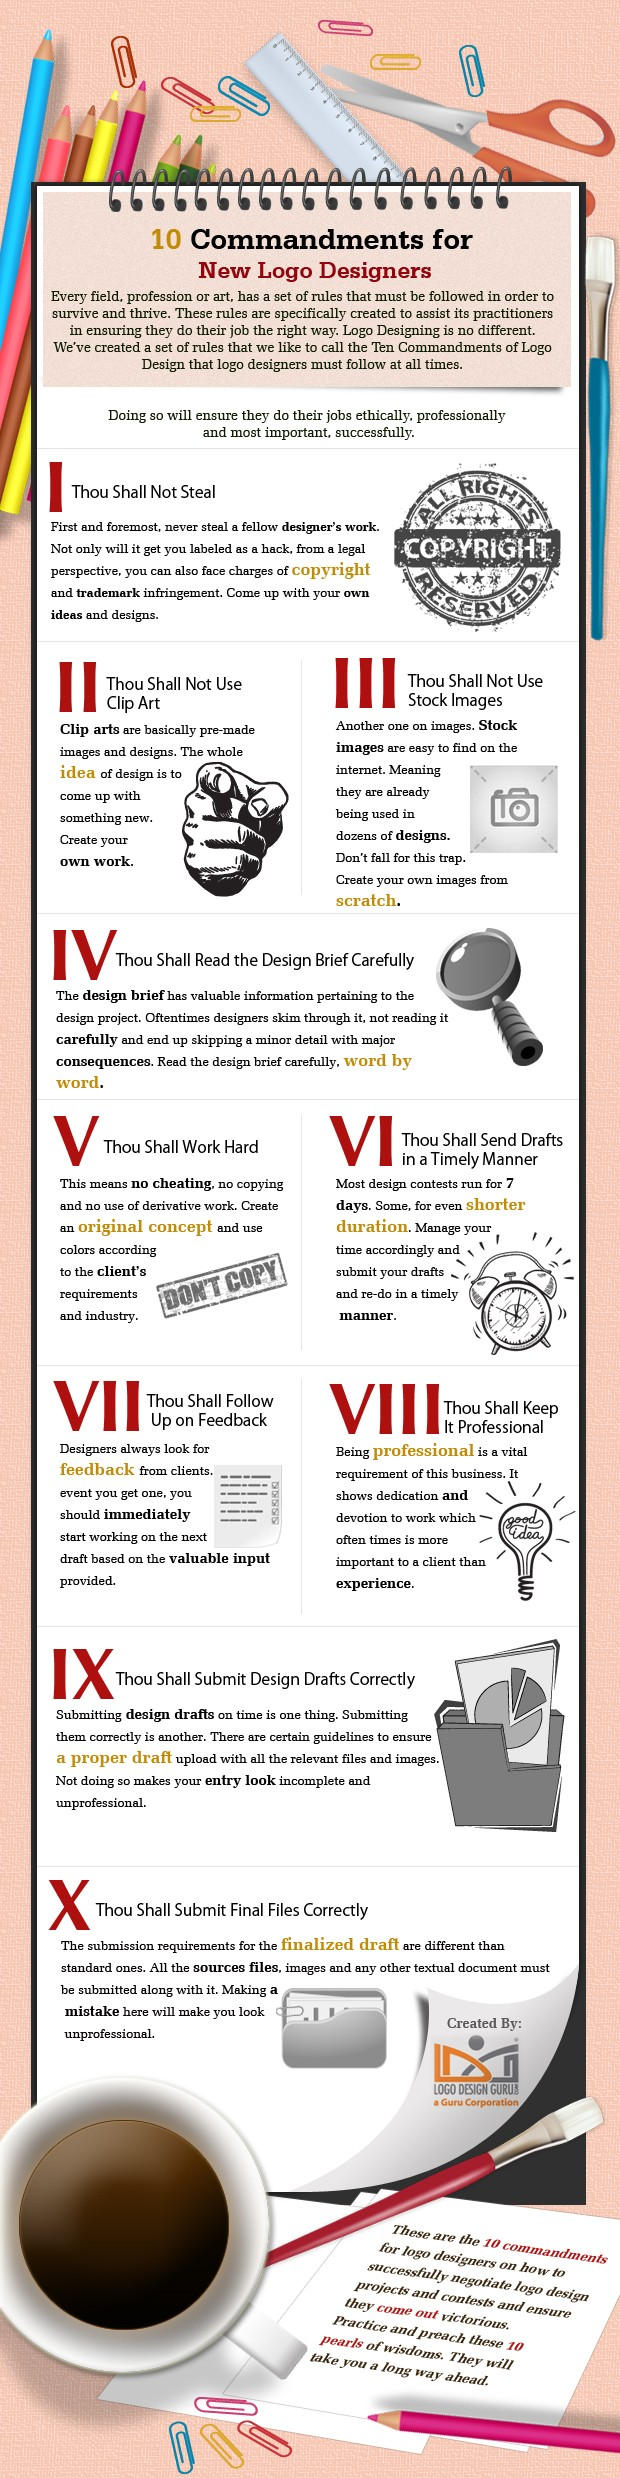 10 Commandments for New Logo Designers (Infographic)